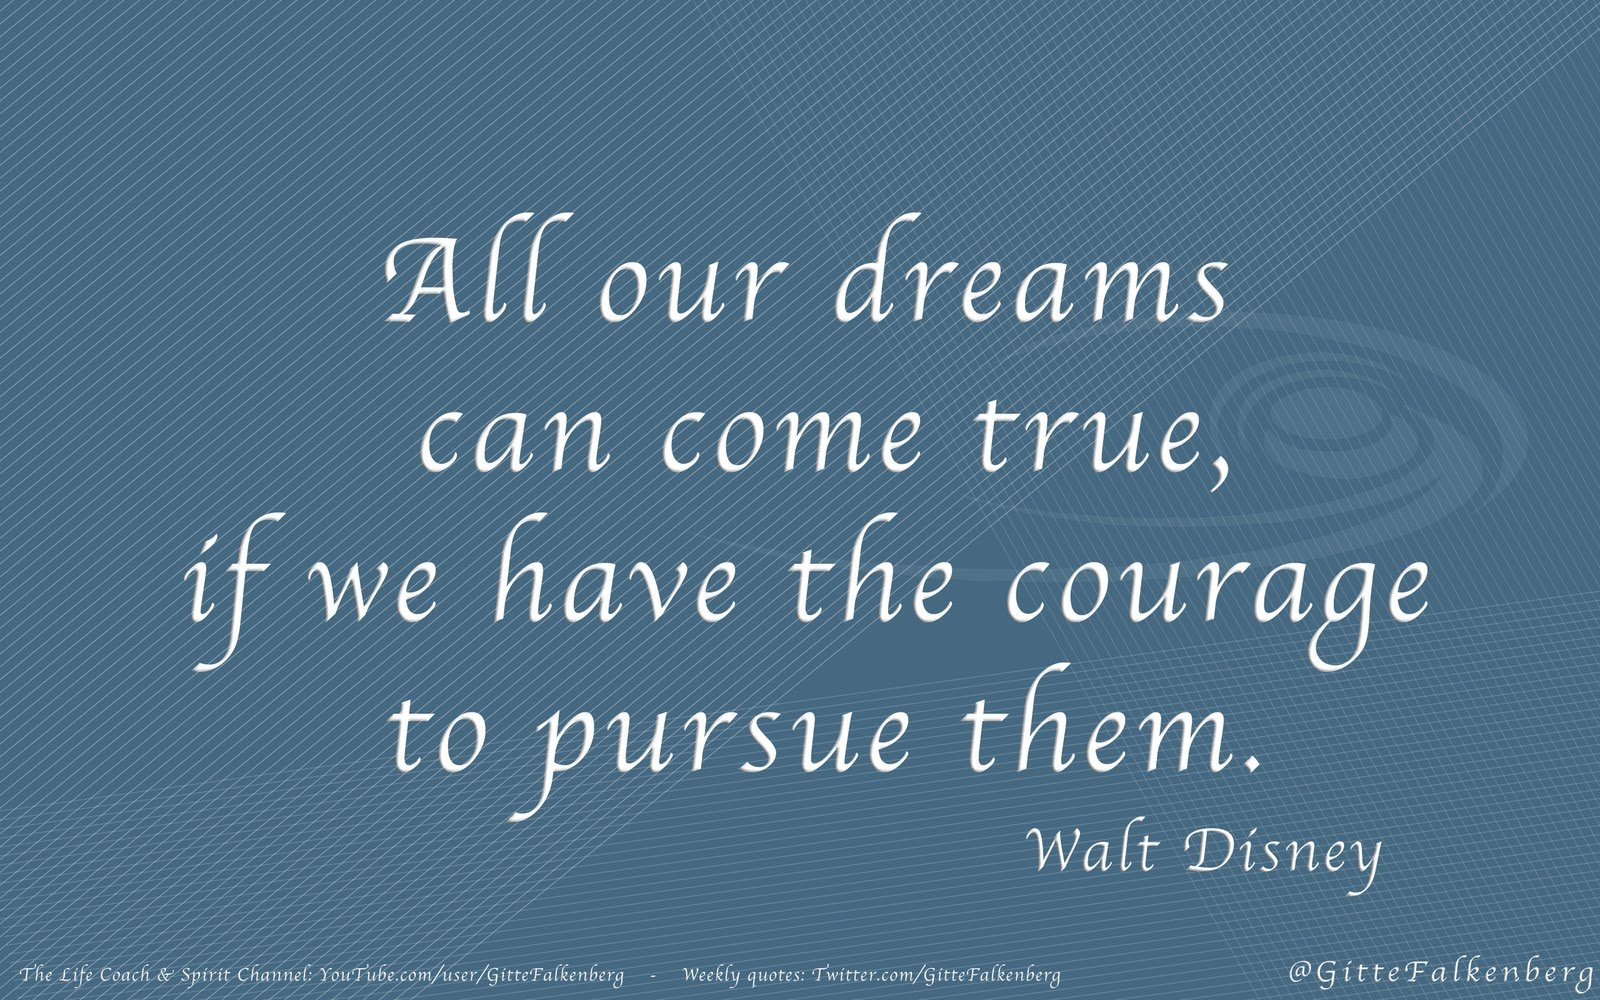 Love courage Quotes Wallpaper : Disney Quotes Desktop Wallpaper - WallpaperSafari